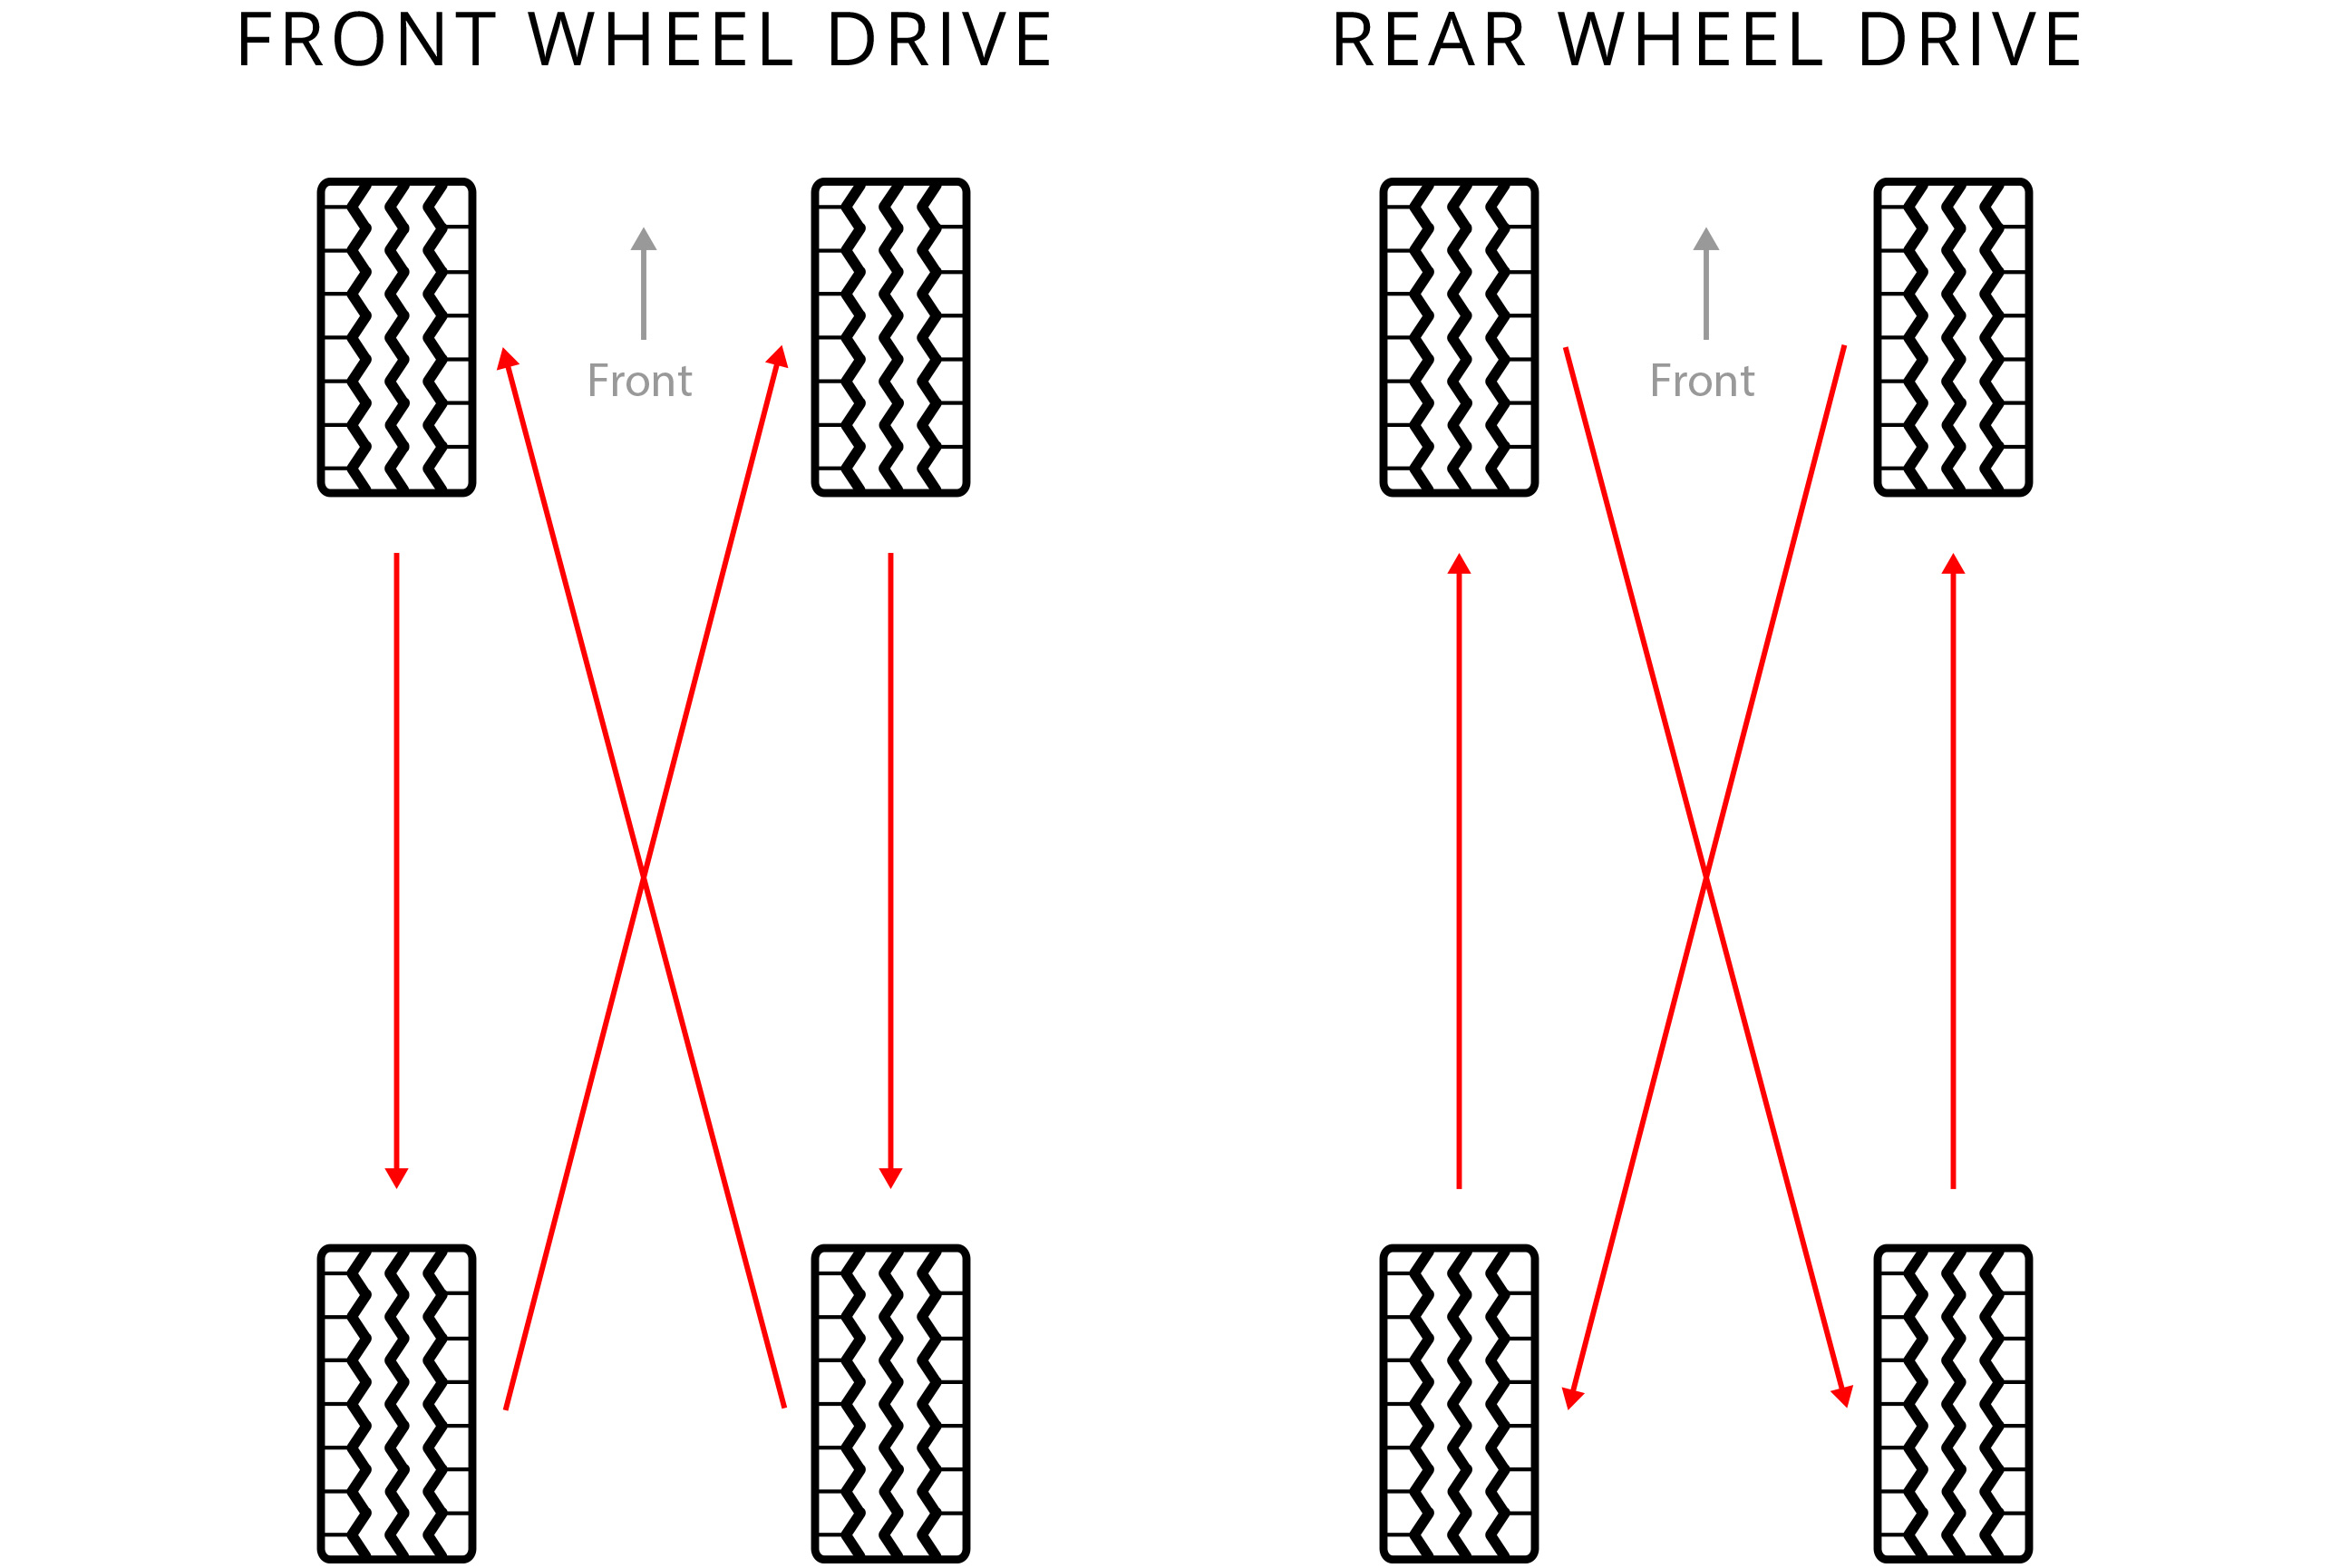 Tire Rotation - Tire Alignment, Balance, & Rotation Information on